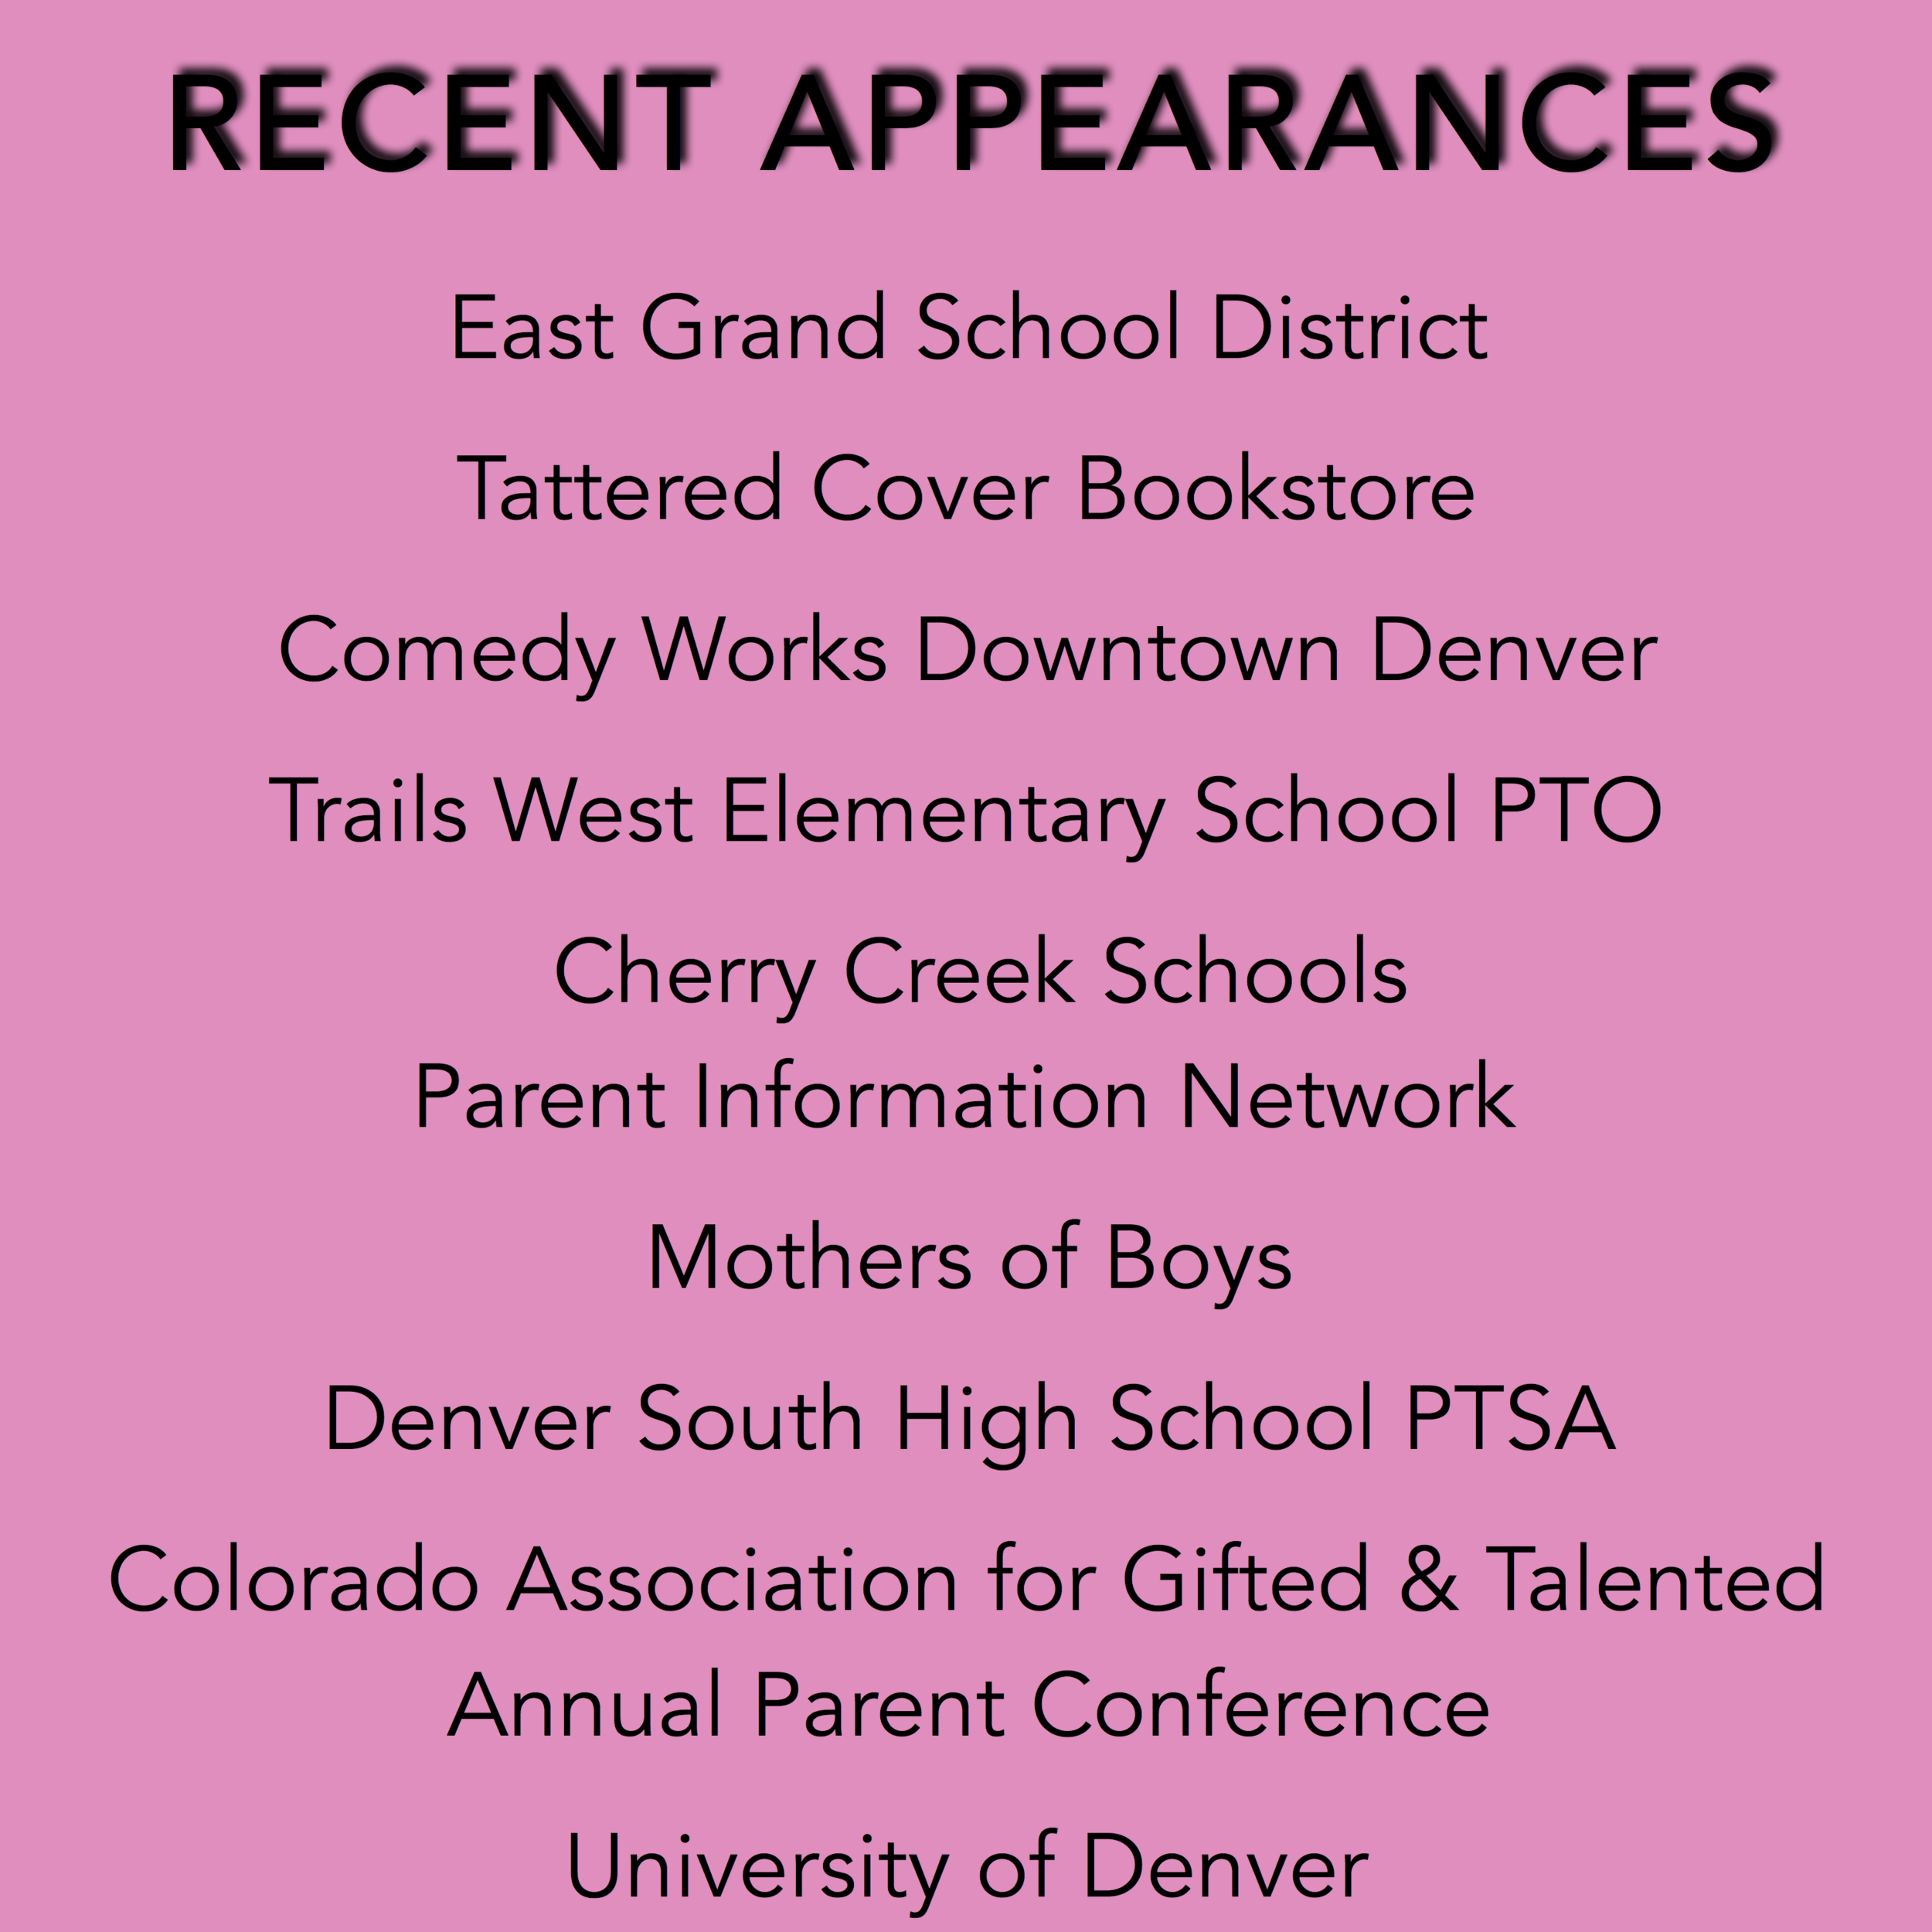 recent appearances BMB.png